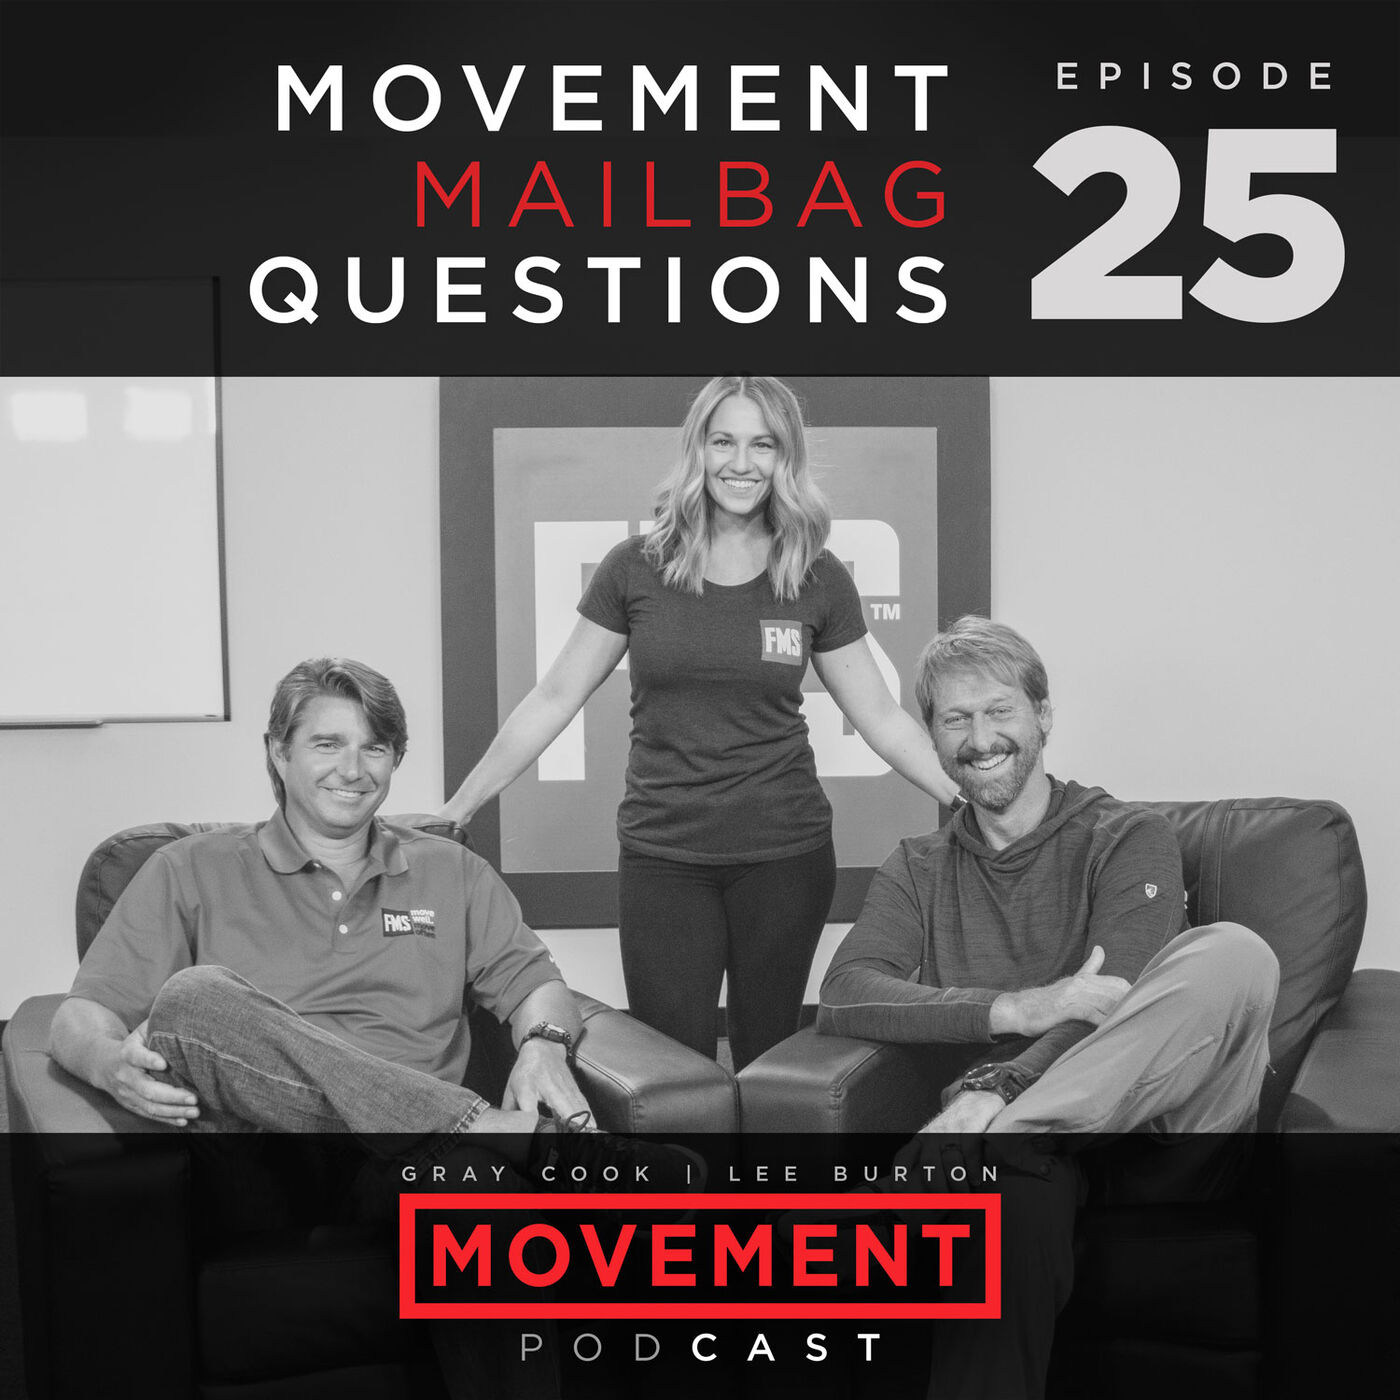 Movement Mailbag Questions